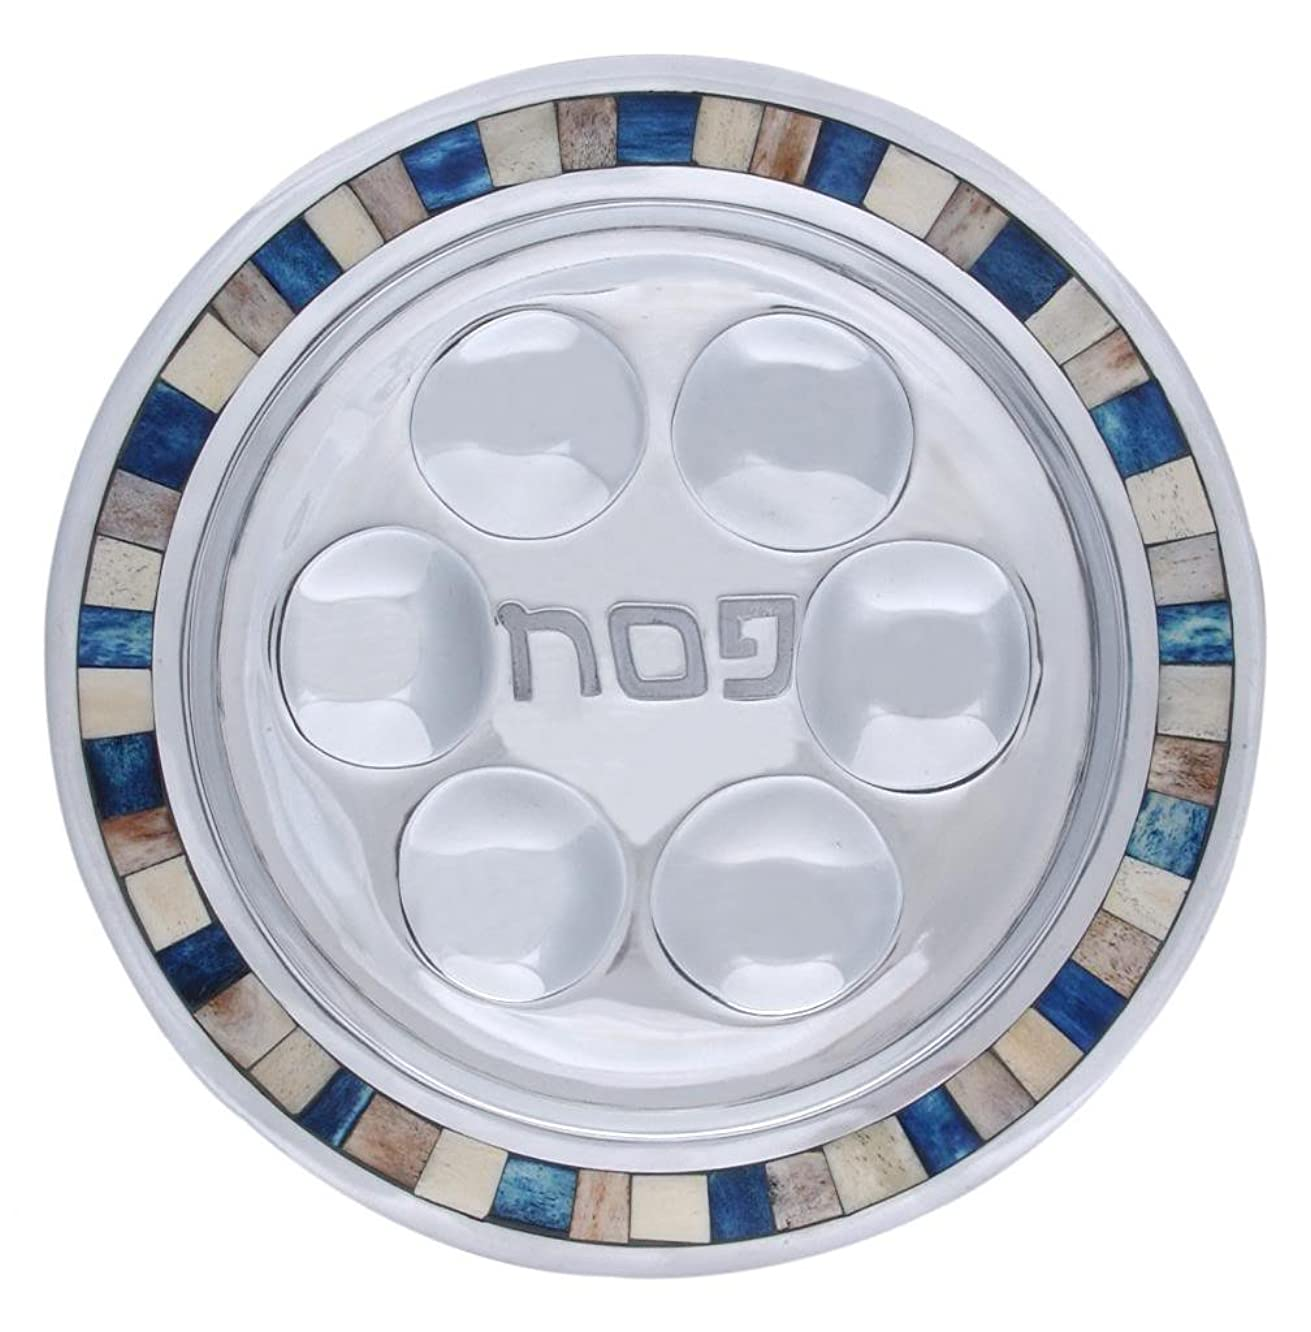 Stainless Steel Round Seder Plate in Blue Square Design